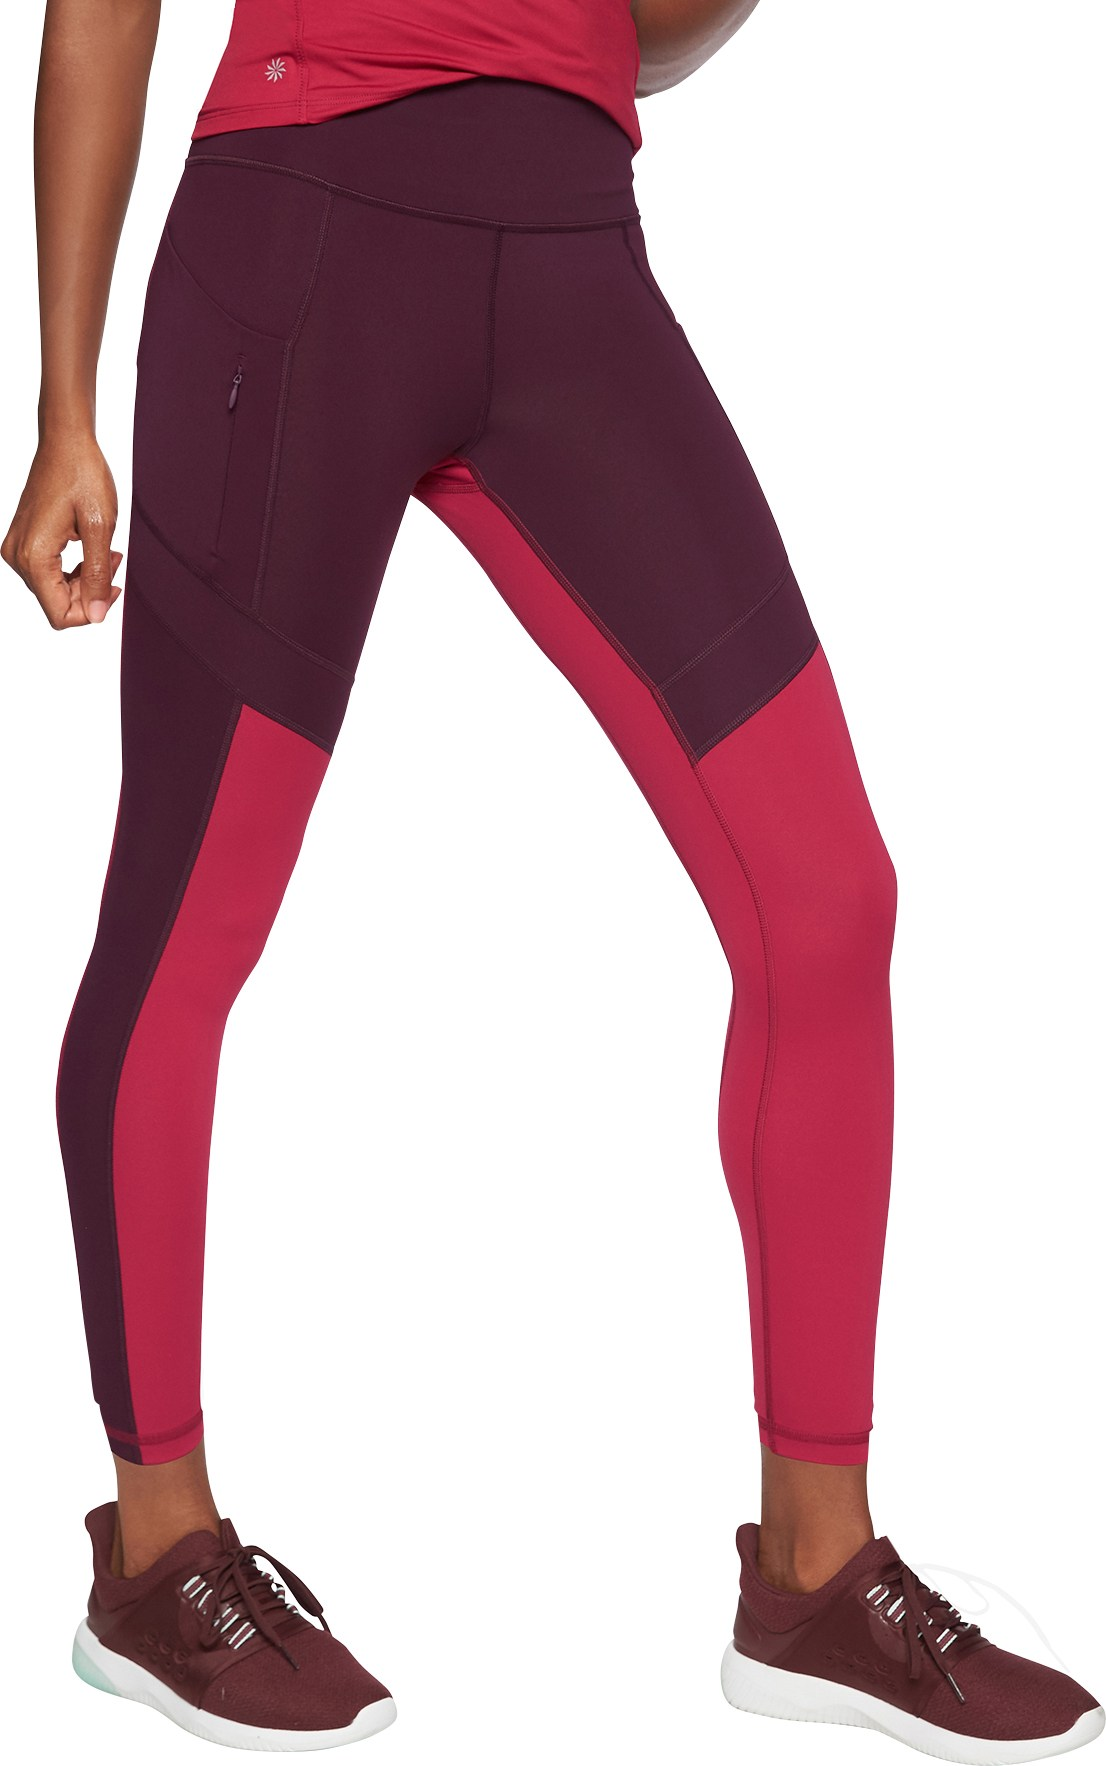 Athleta All In Structure 7/8 Tights - Women's